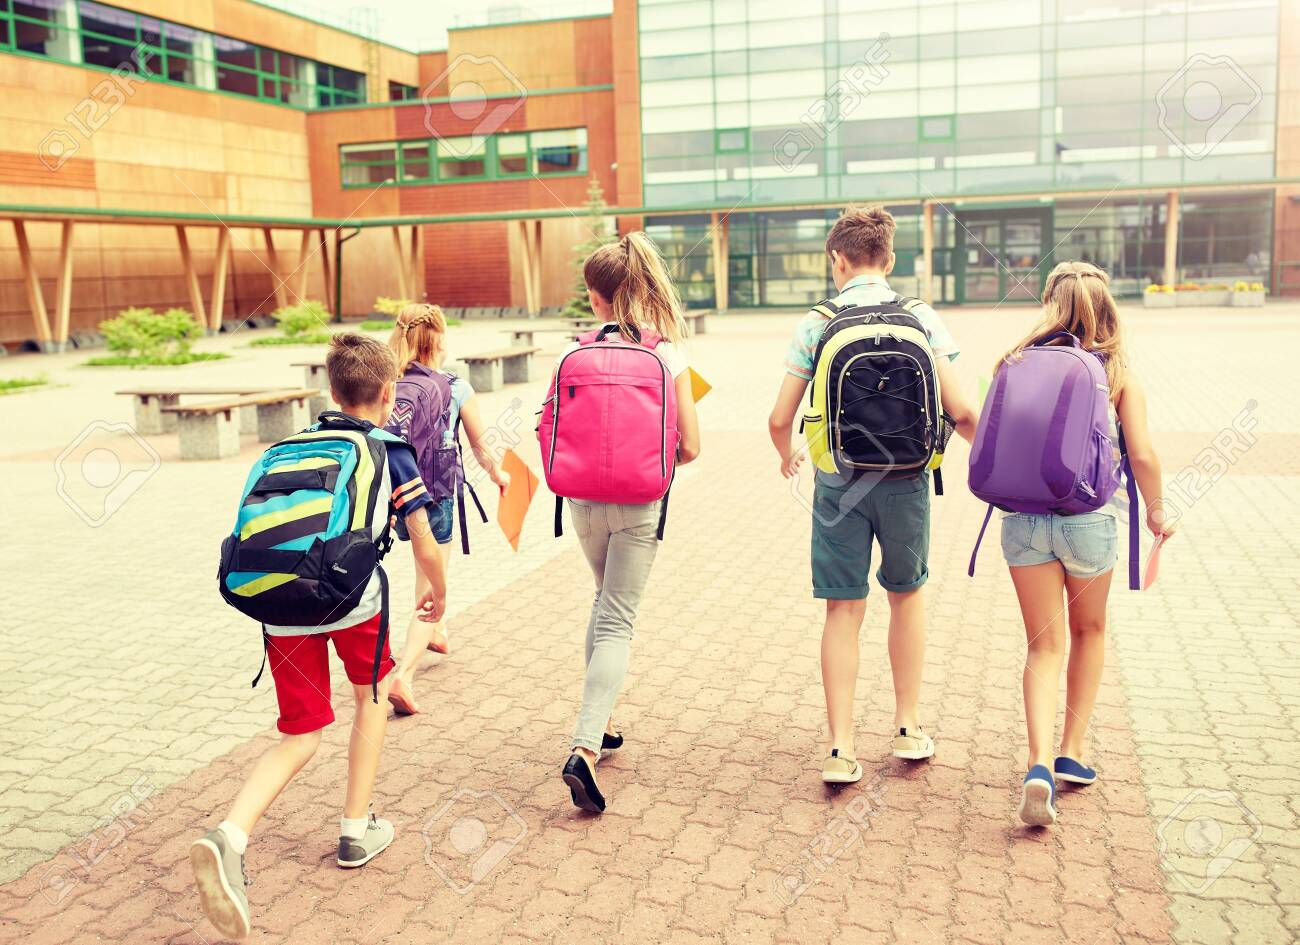 primary education, friendship, childhood and people concept - group of happy elementary school students with backpacks running outdoors - 140533663